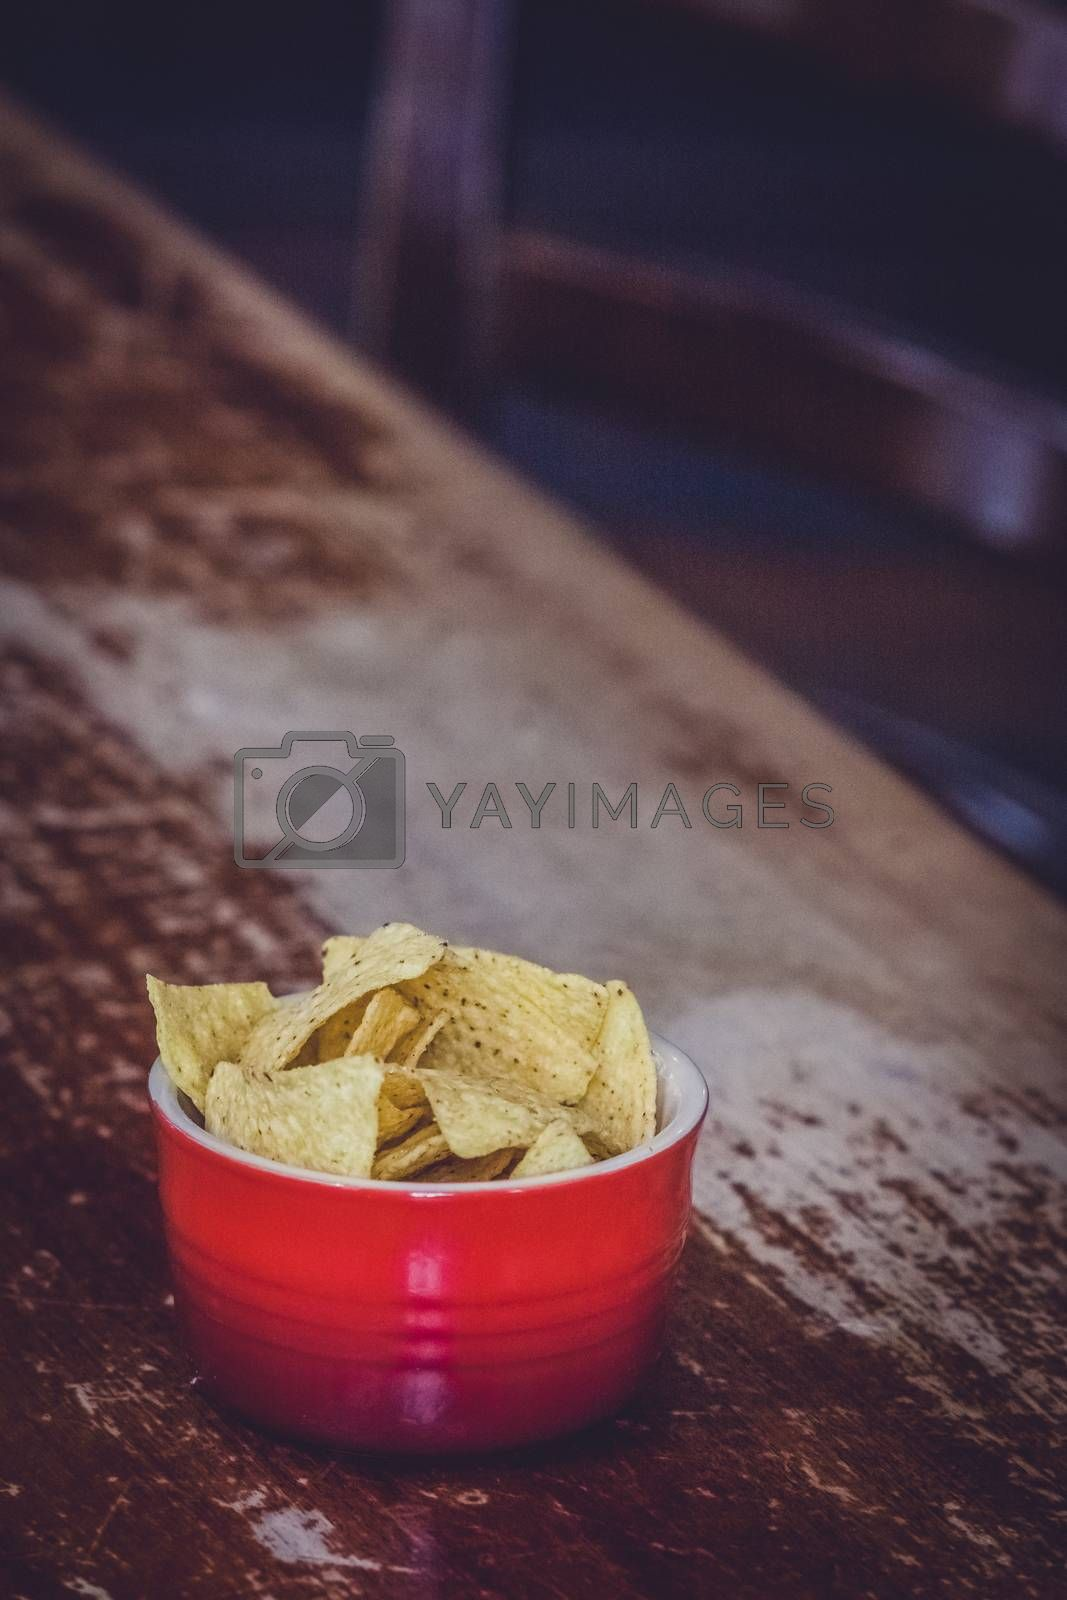 Nachos in red bowl on a table in a pub